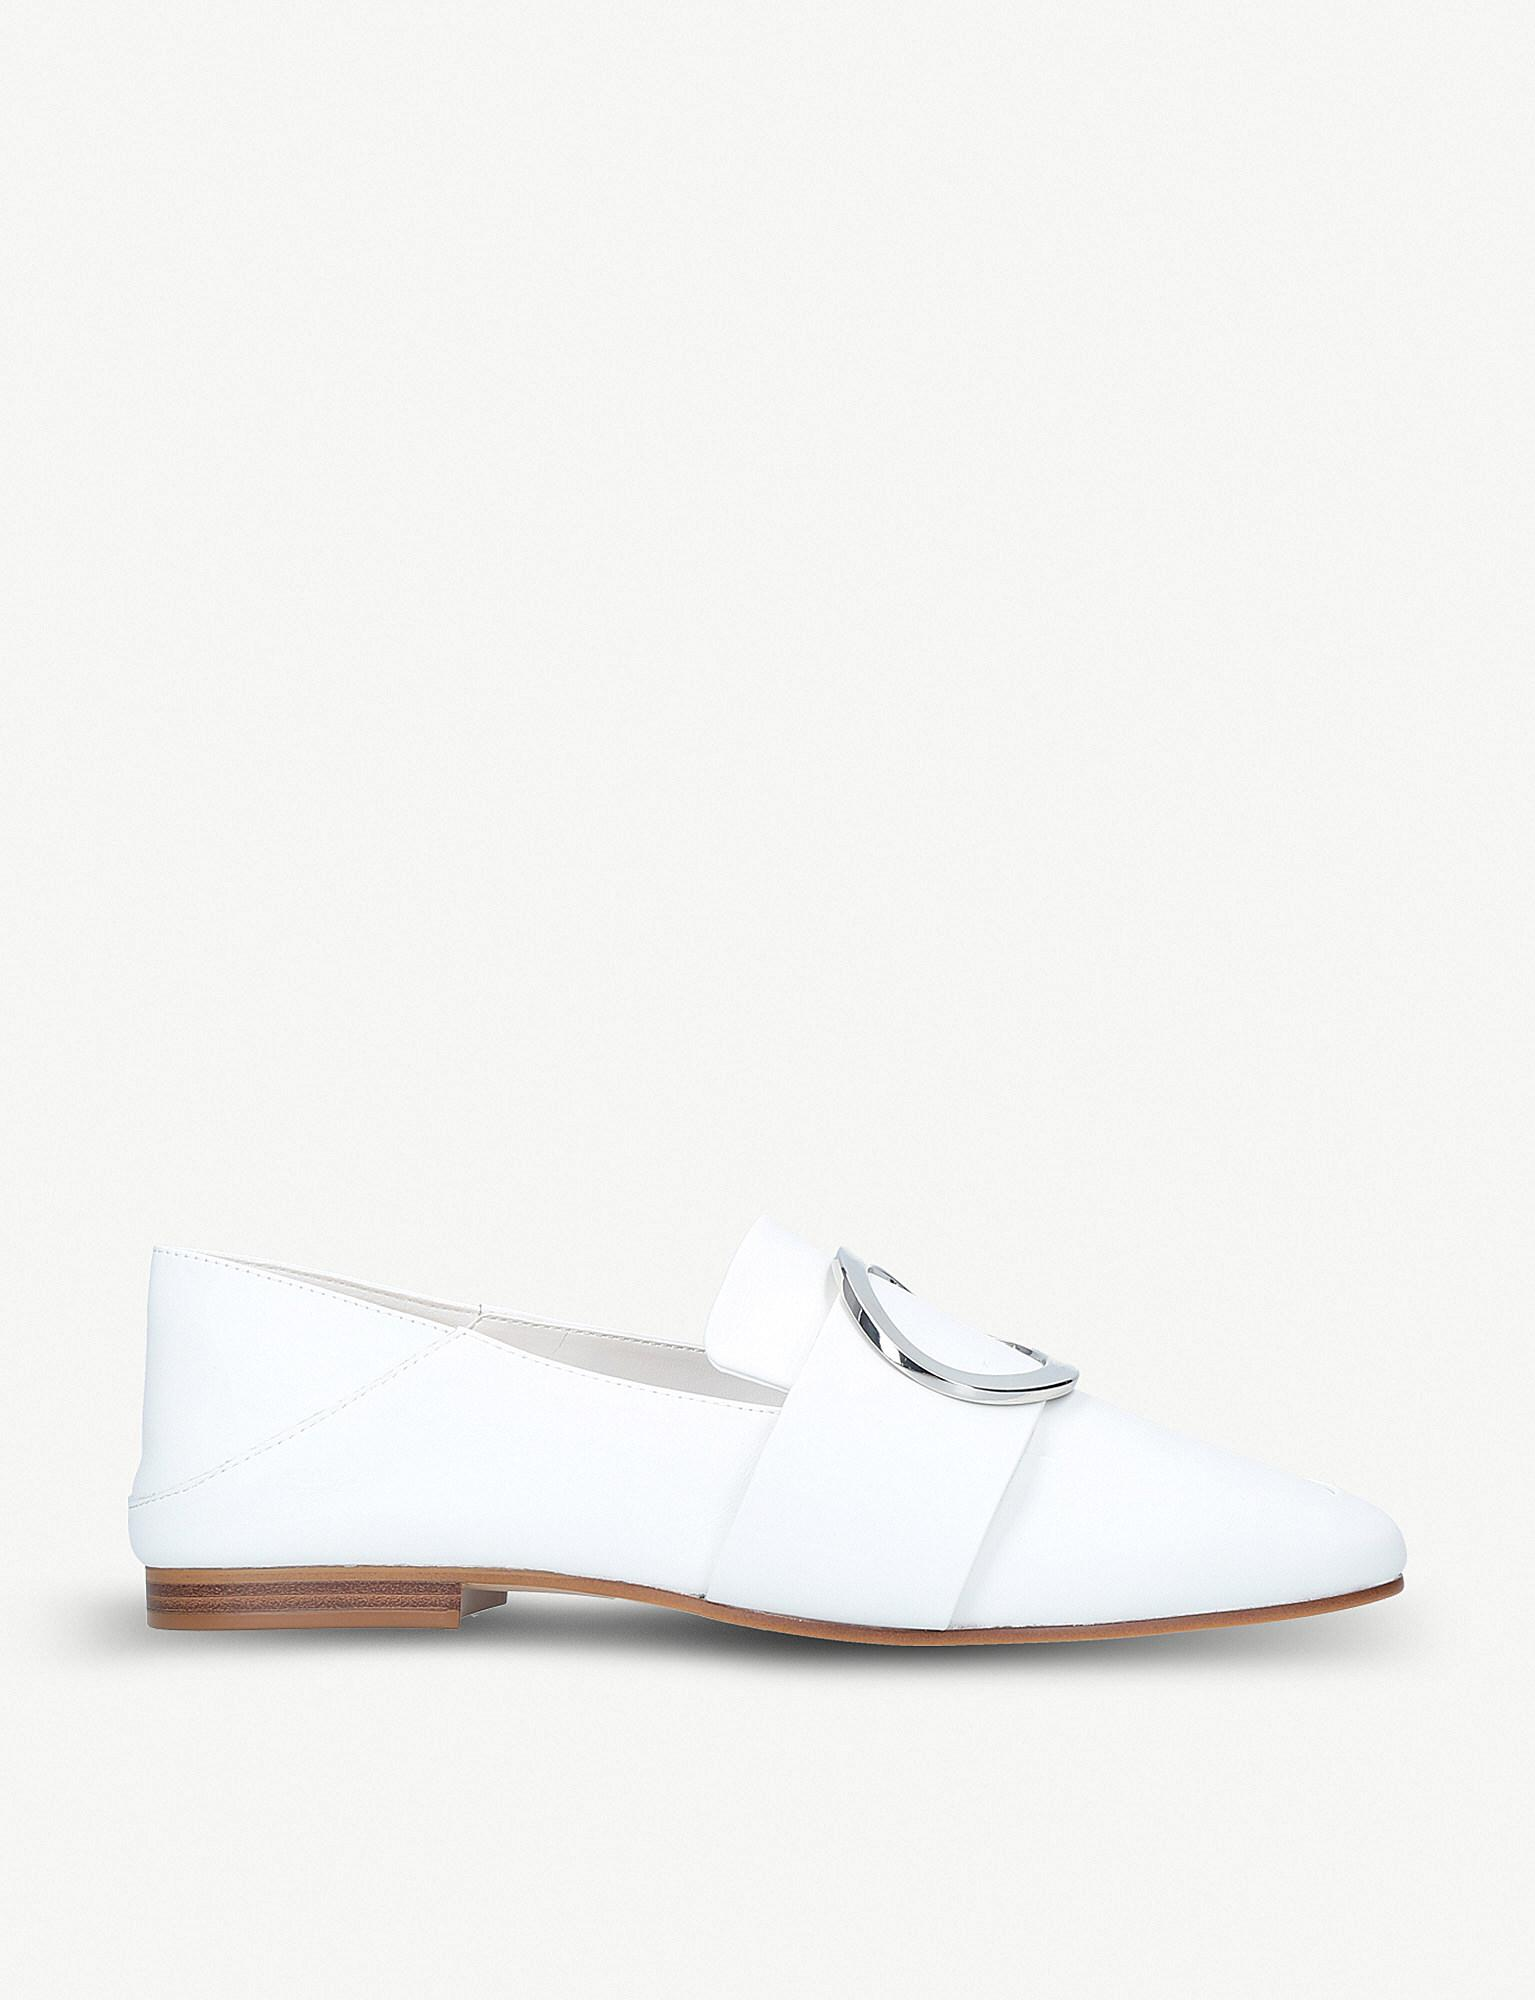 0a846bd047 ALDO Cadericia Ring-detail Leather Loafers in White - Lyst